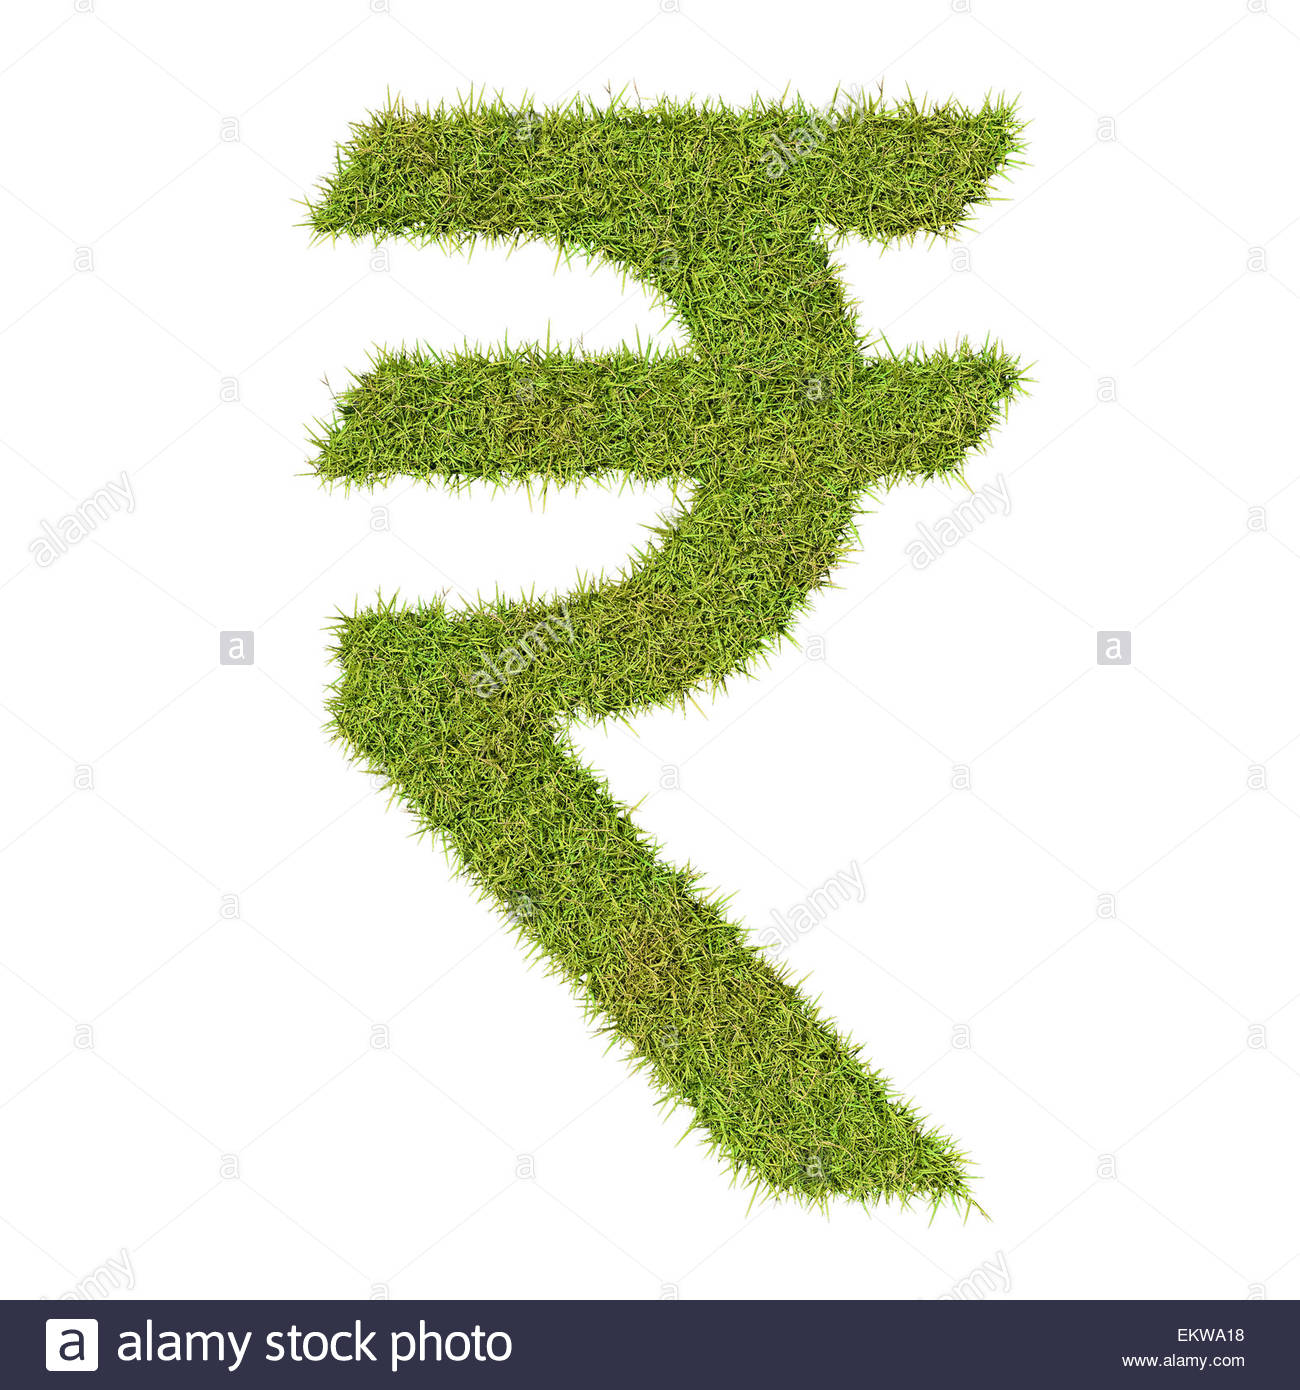 Rupee symbol made from grass symbolising the costs and benefits of green issues and conservation - Stock Image